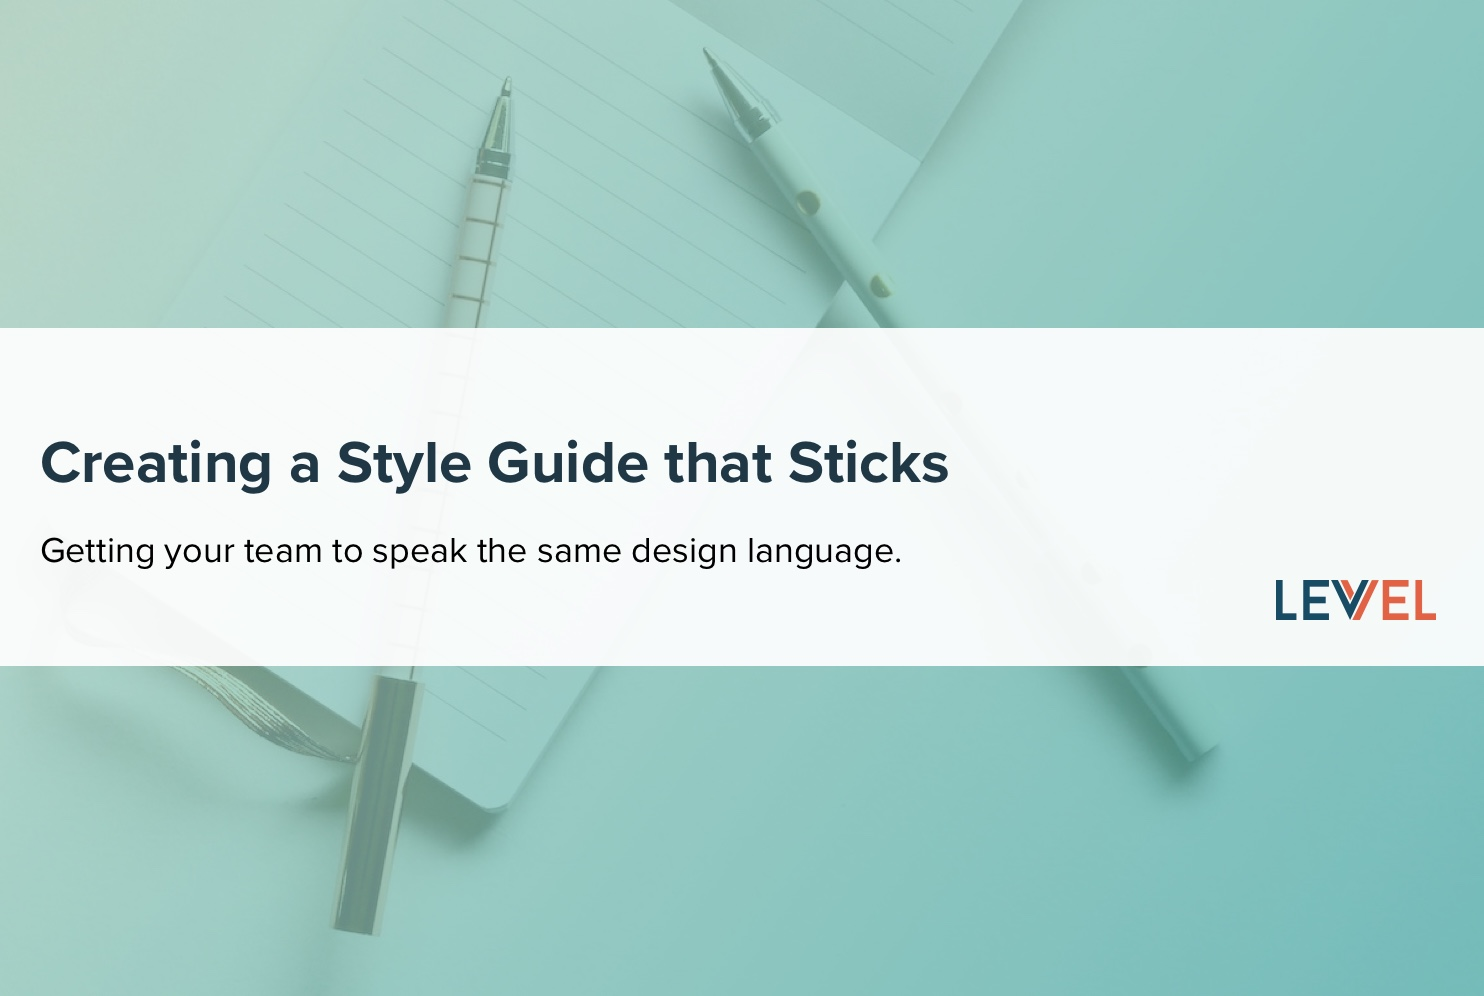 Creating a Style Guide that Sticks